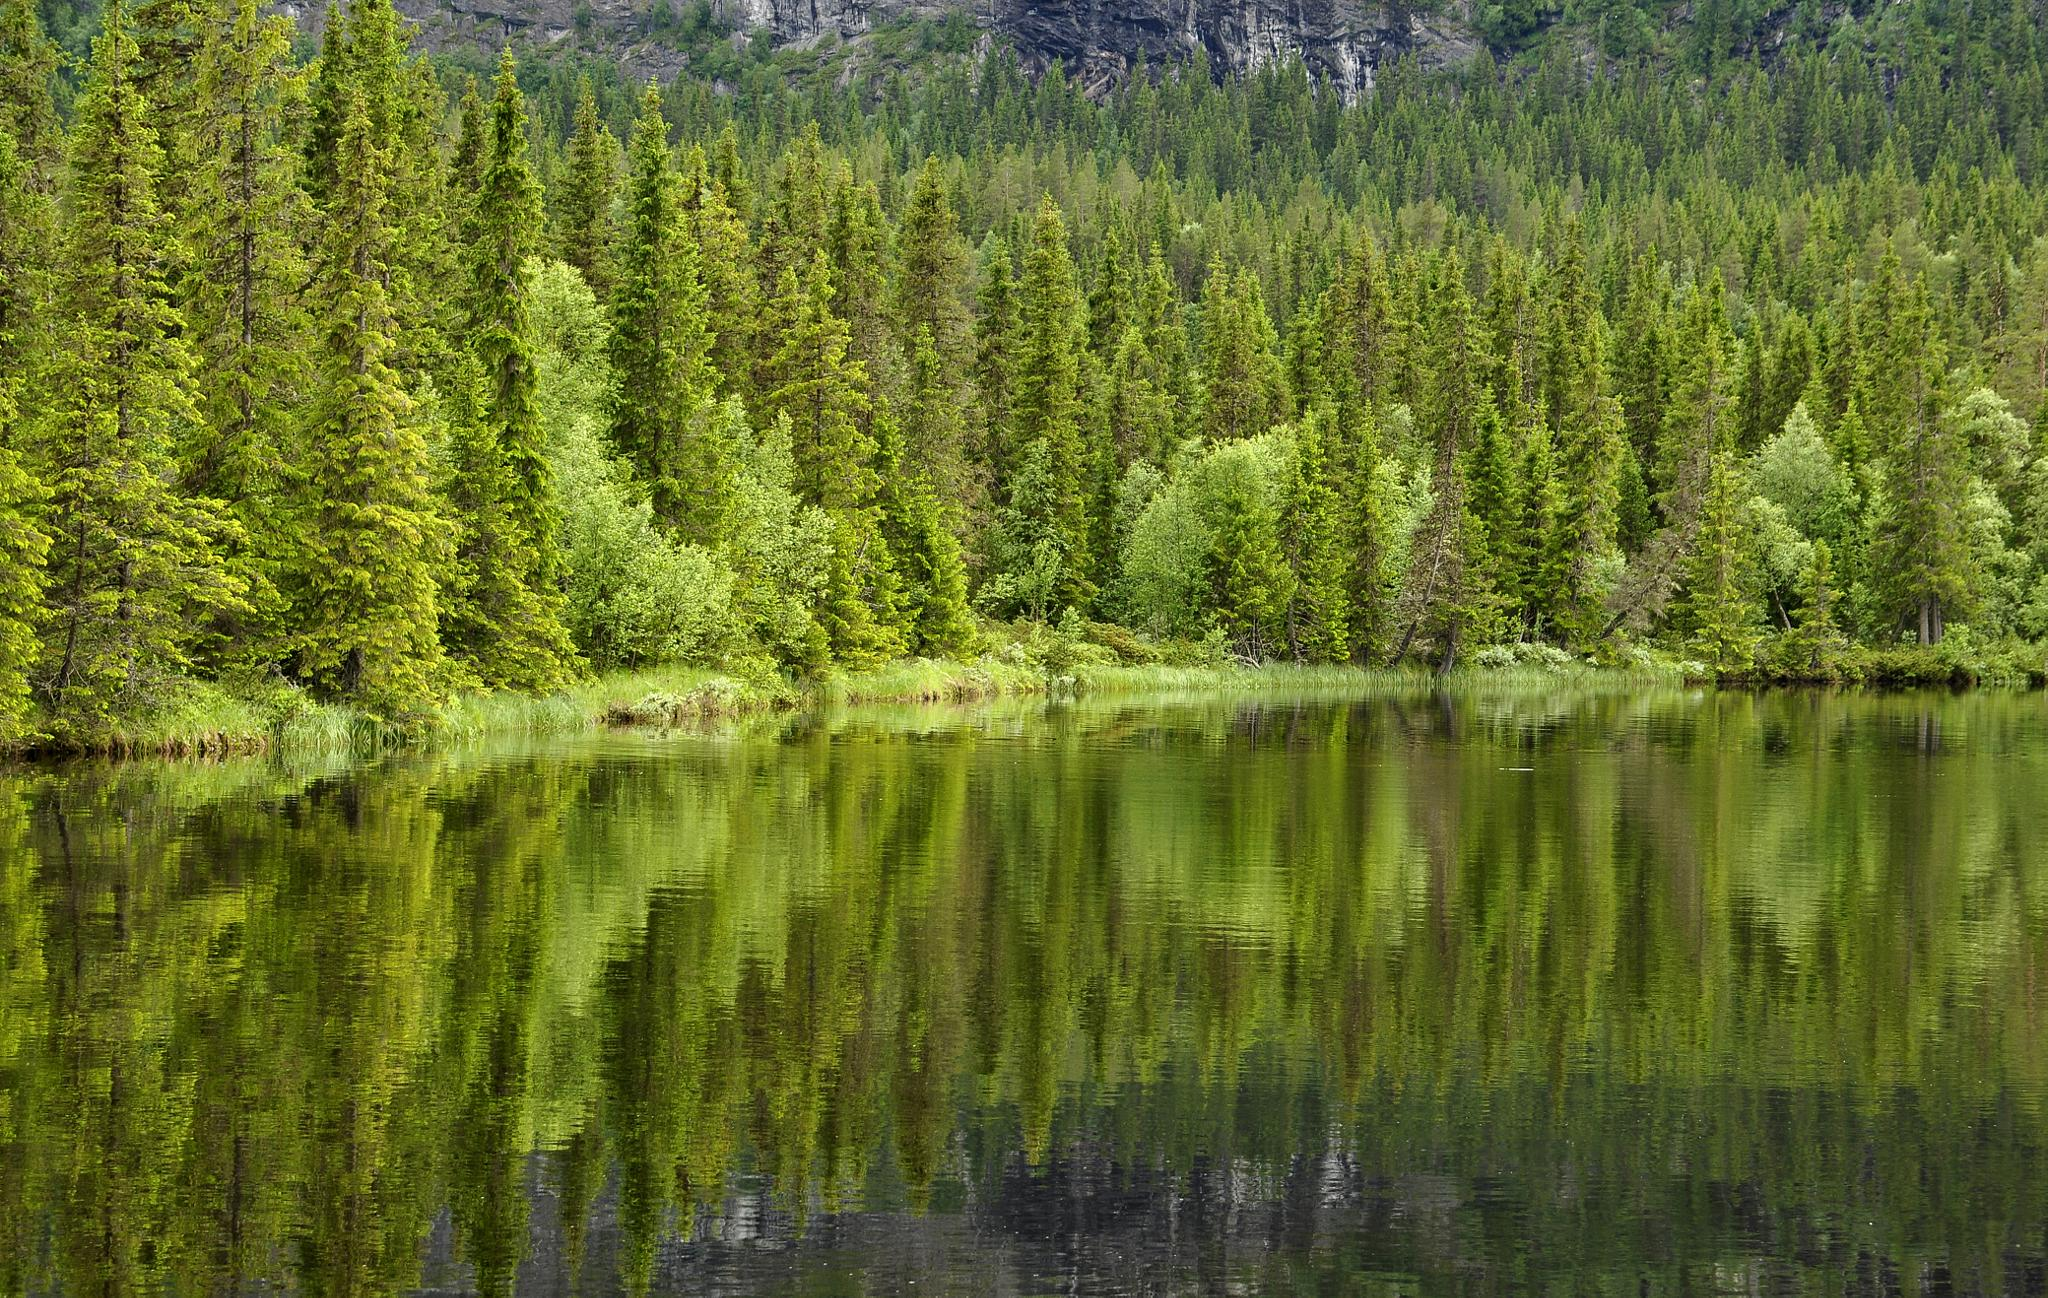 Calm lake reflection by Conny Sjostrom